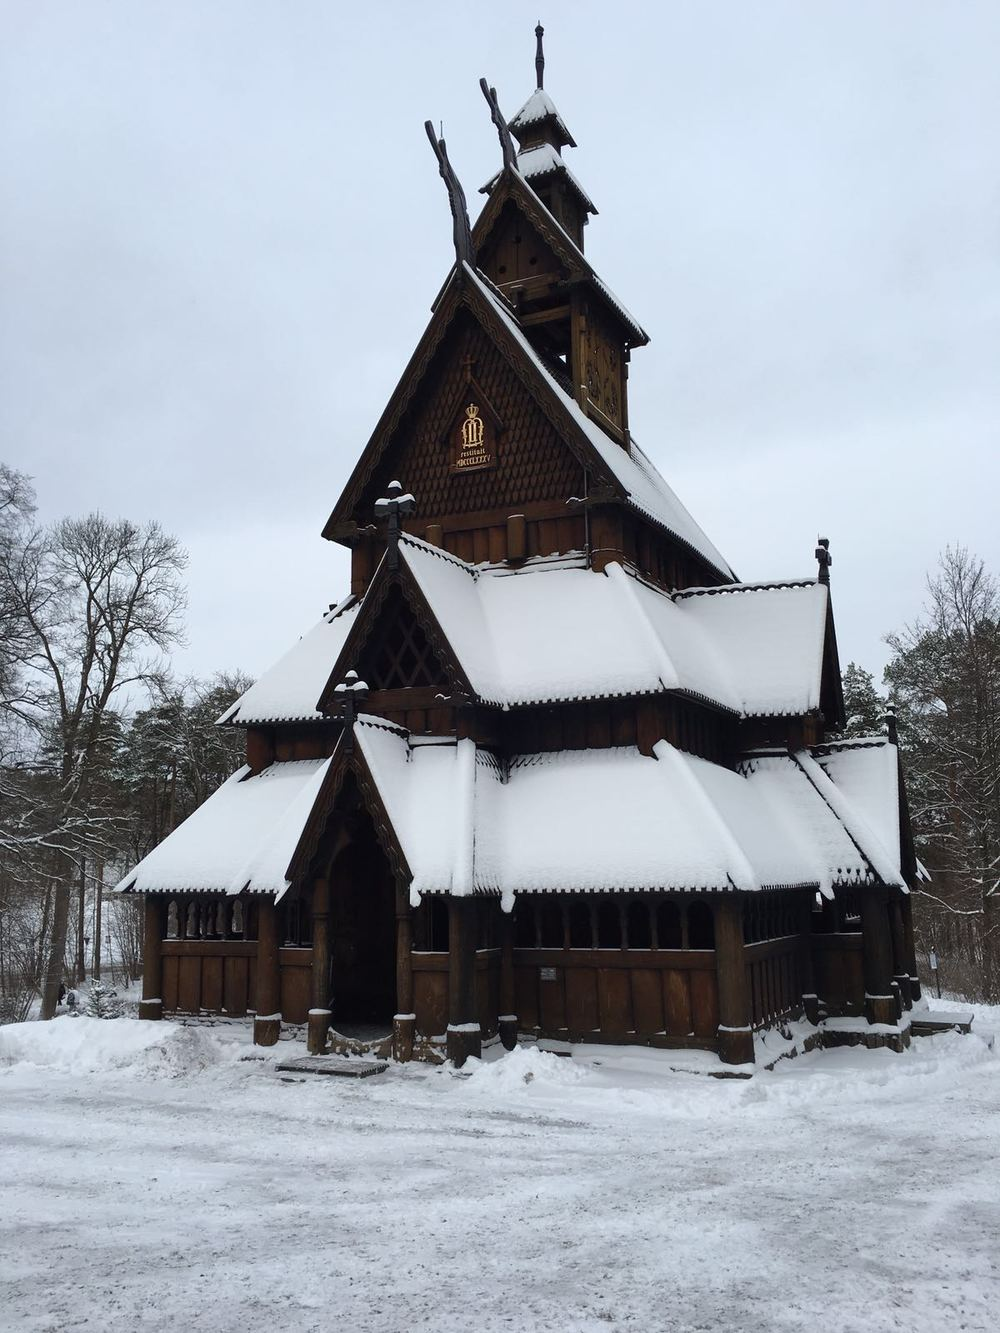 The stave church was brought to Oslo from the municipality of Gol.